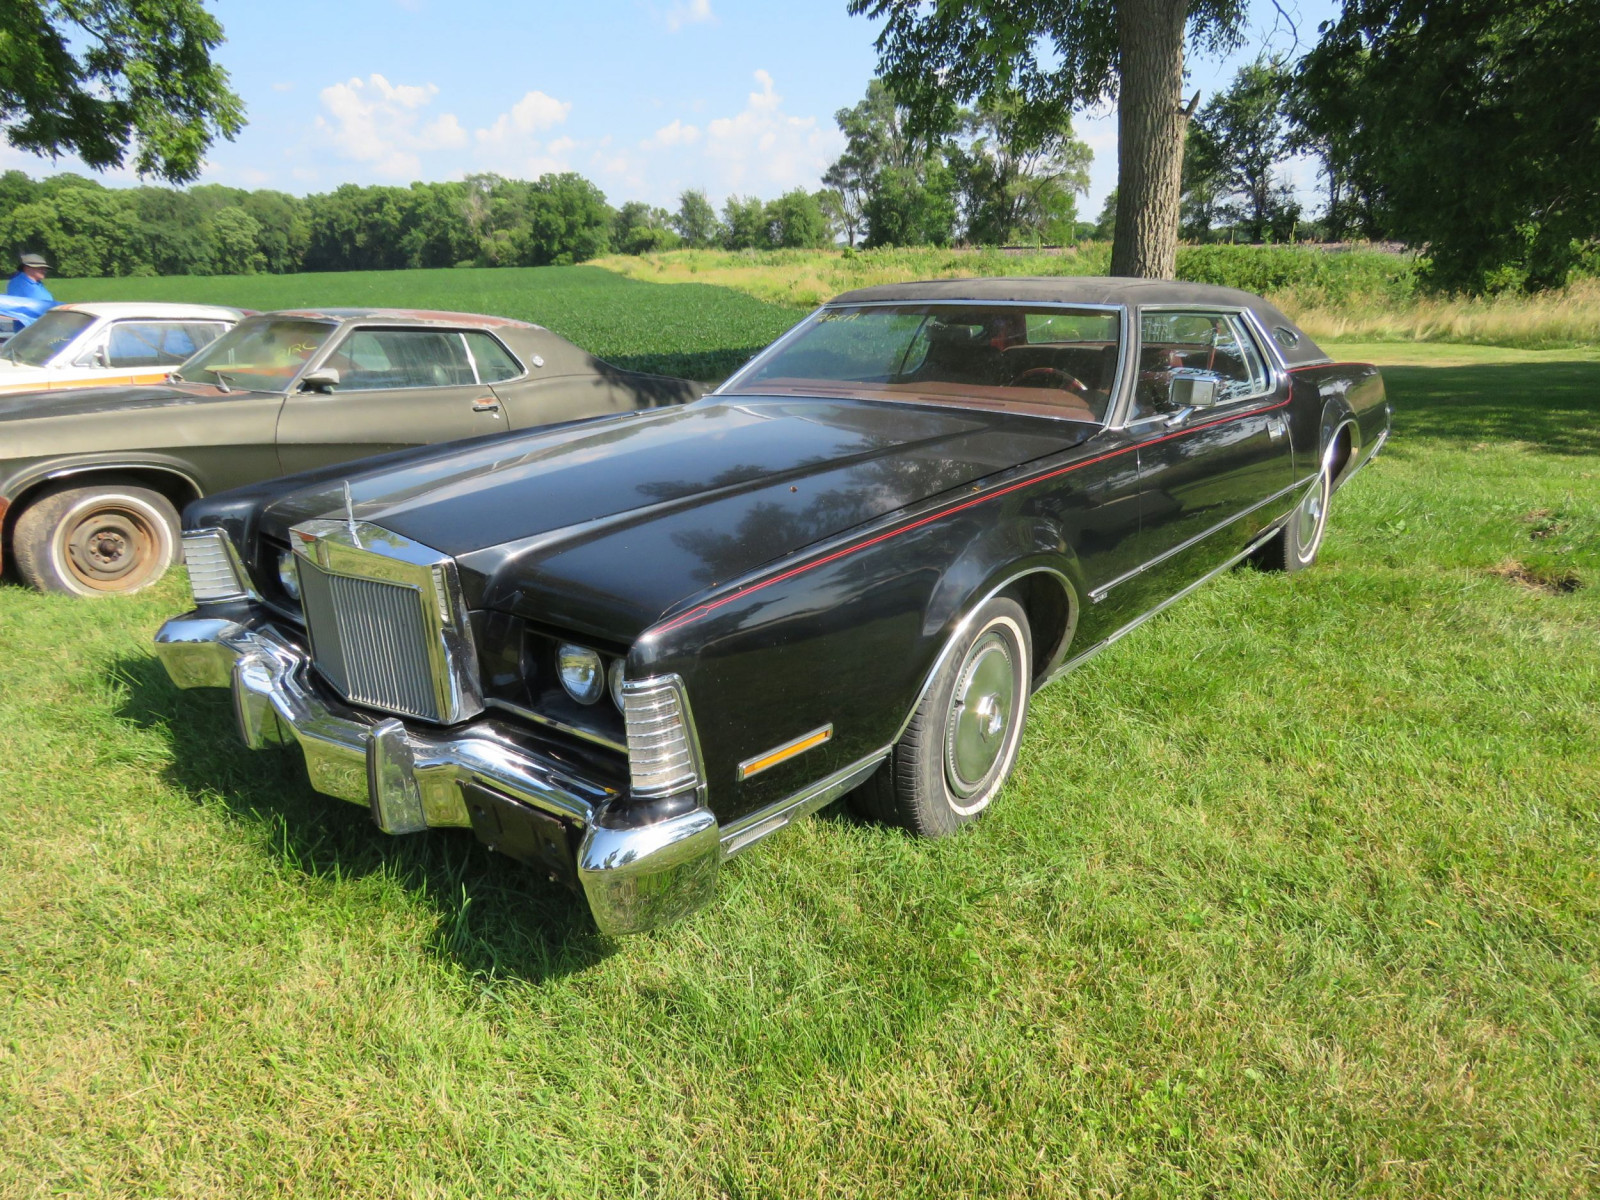 1973 Lincoln Continental Cartier Coupe - Image 3